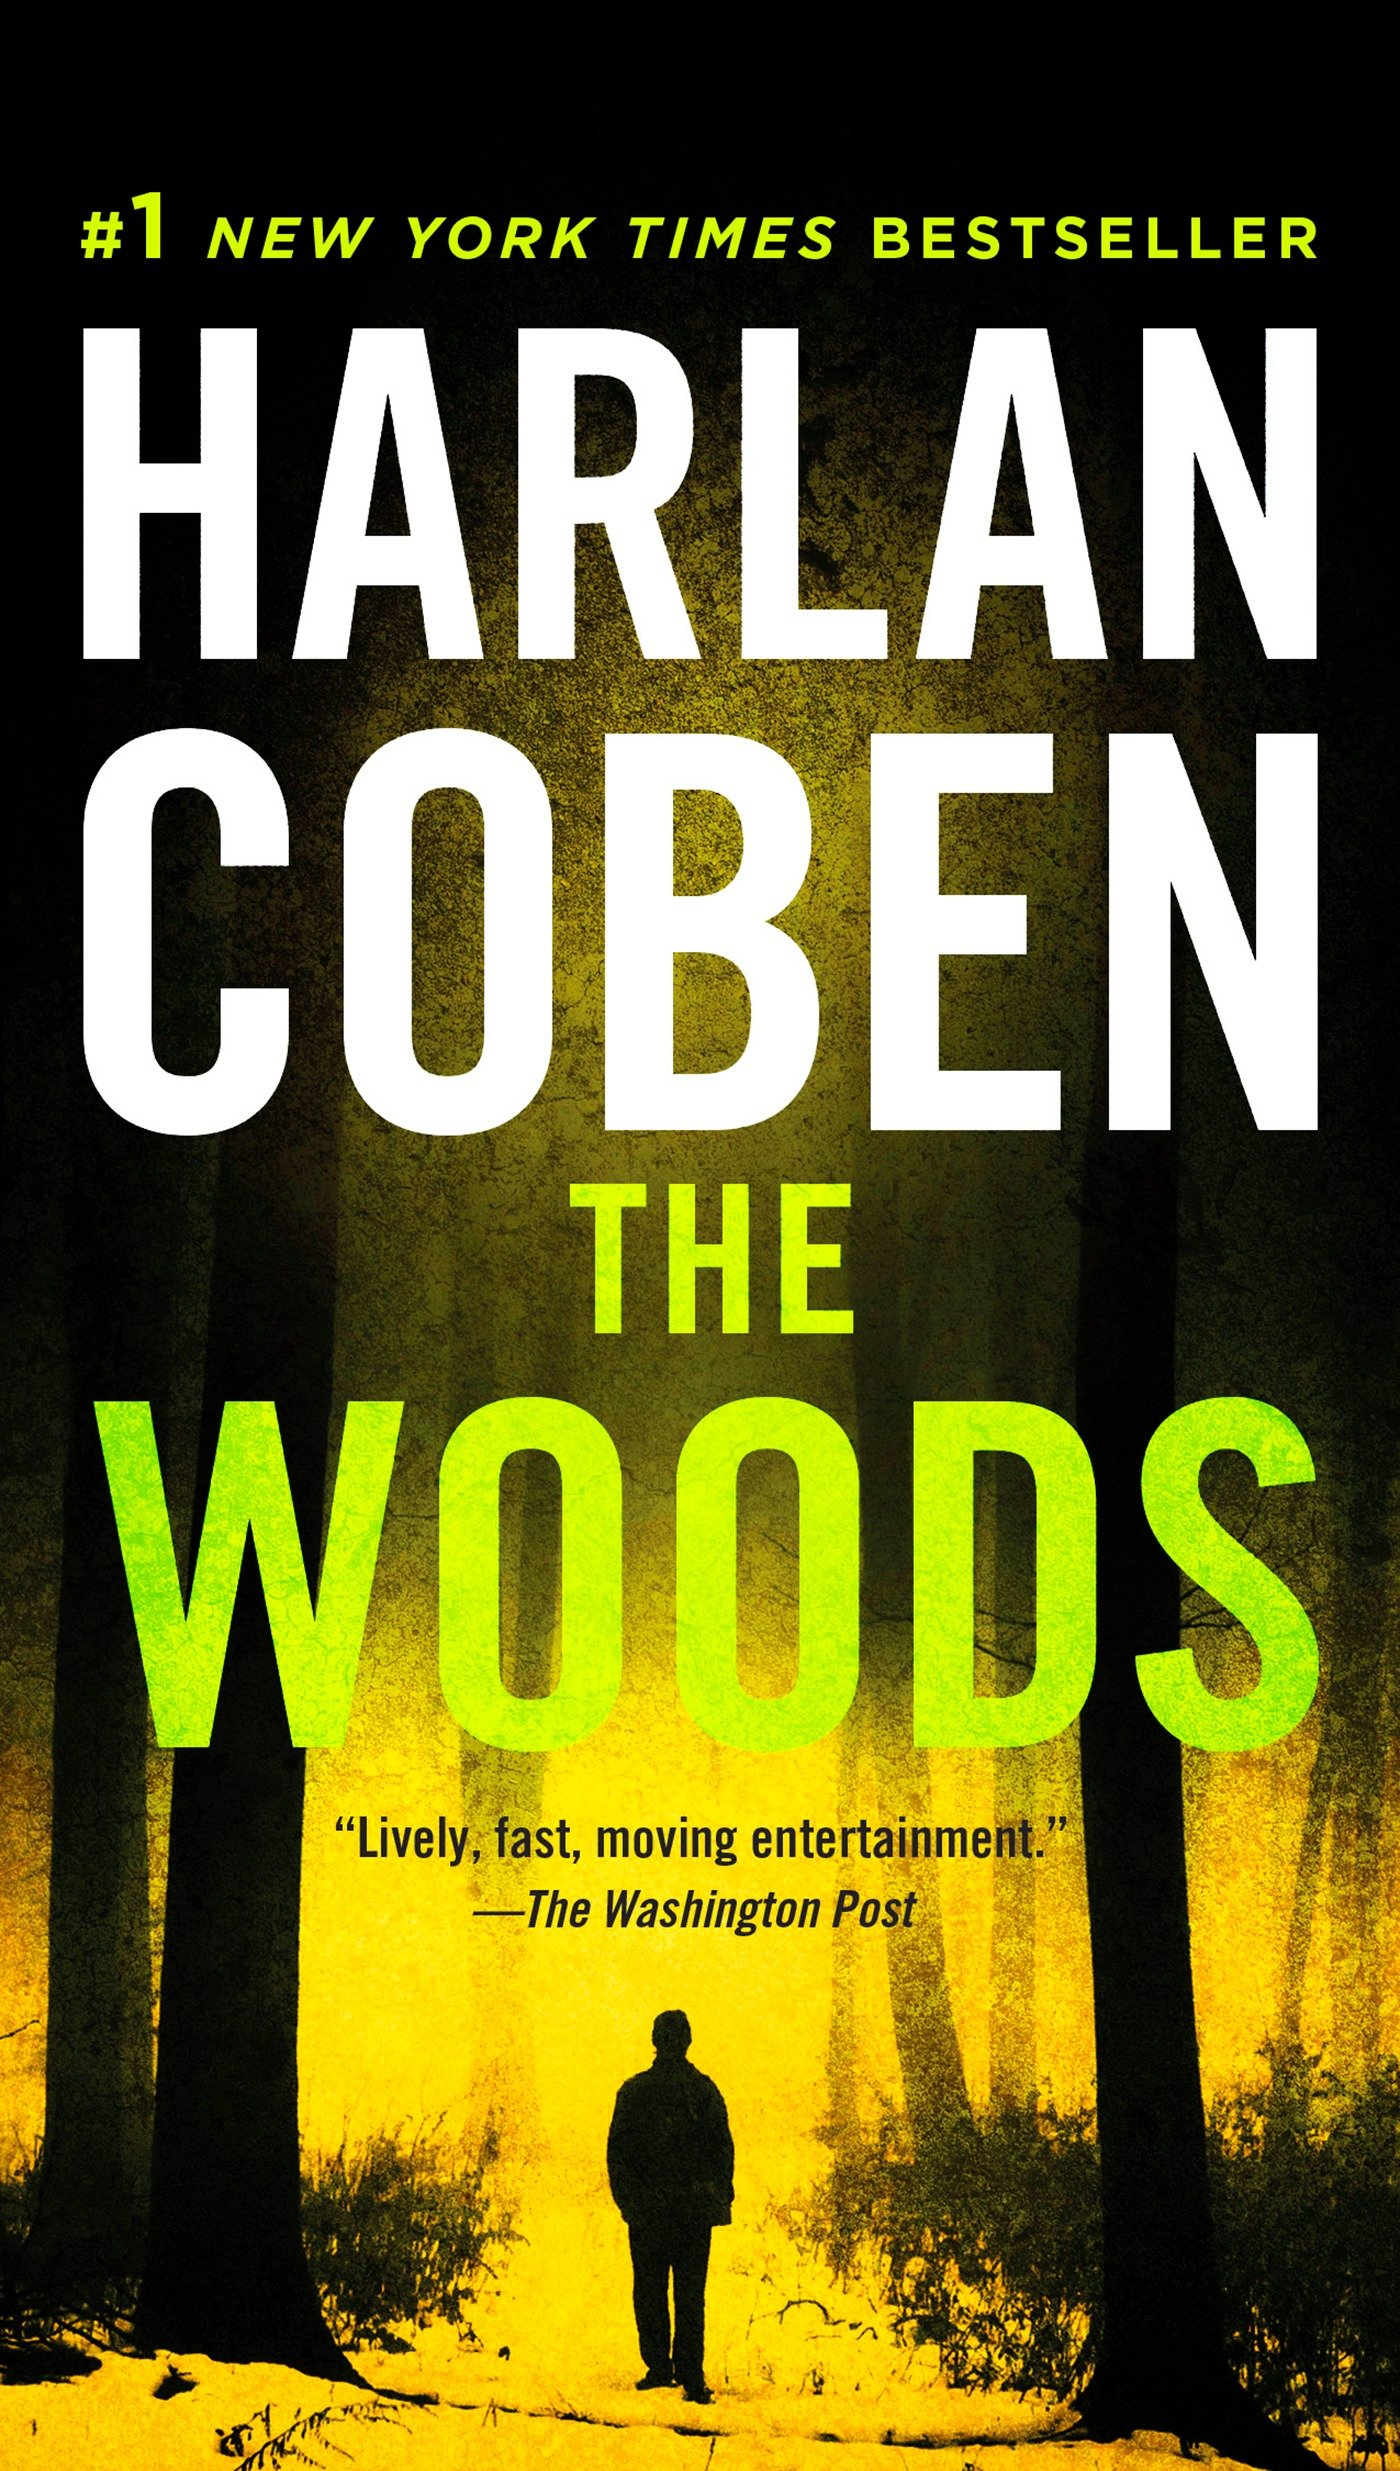 Image result for the woods book cover by harlan coben